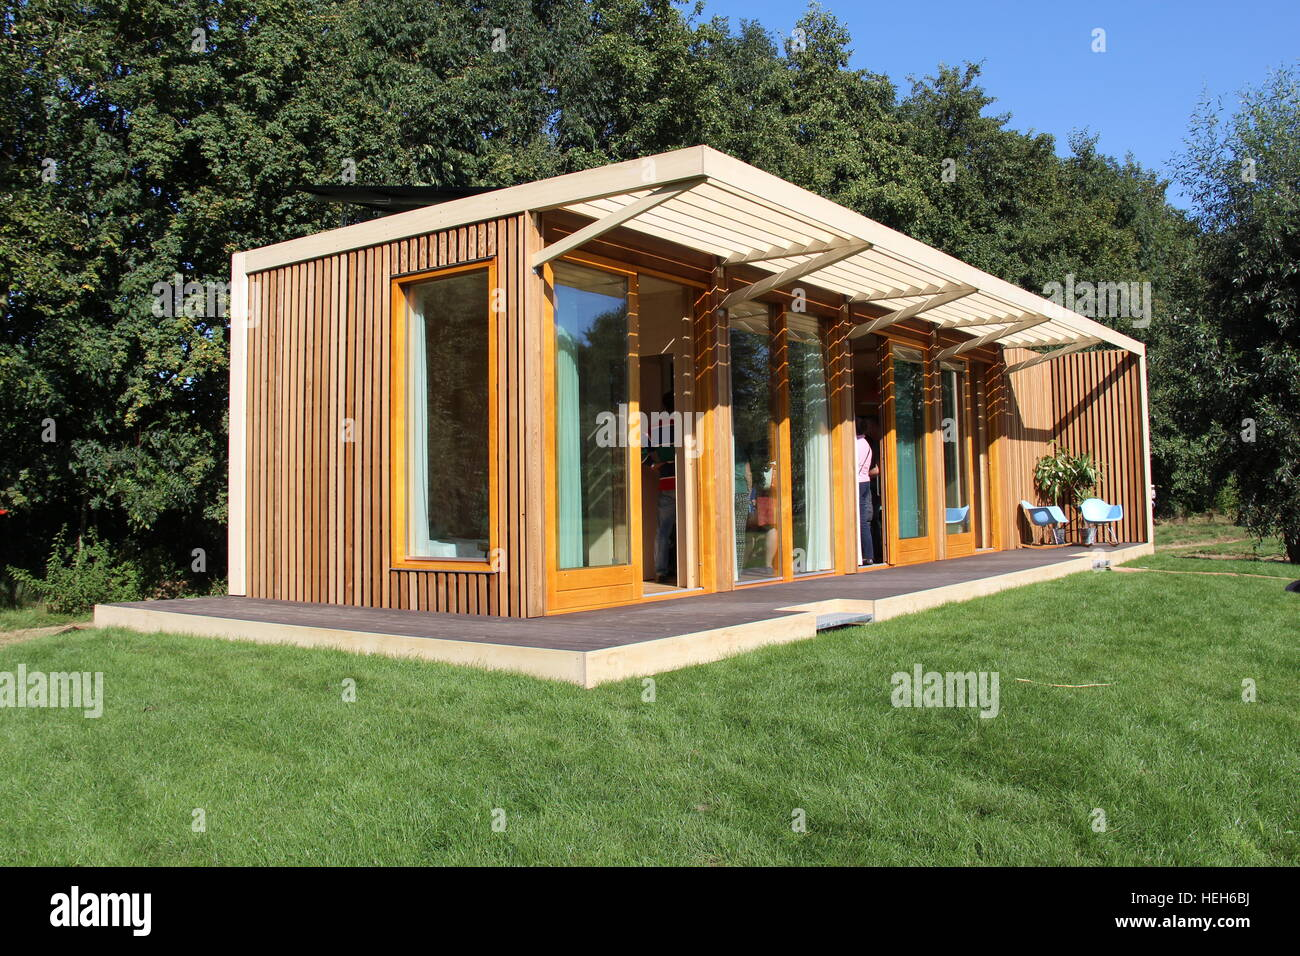 A self-sufficient tiny house, the first eco-friendly off-grid sustainer home ever built - Stock Image